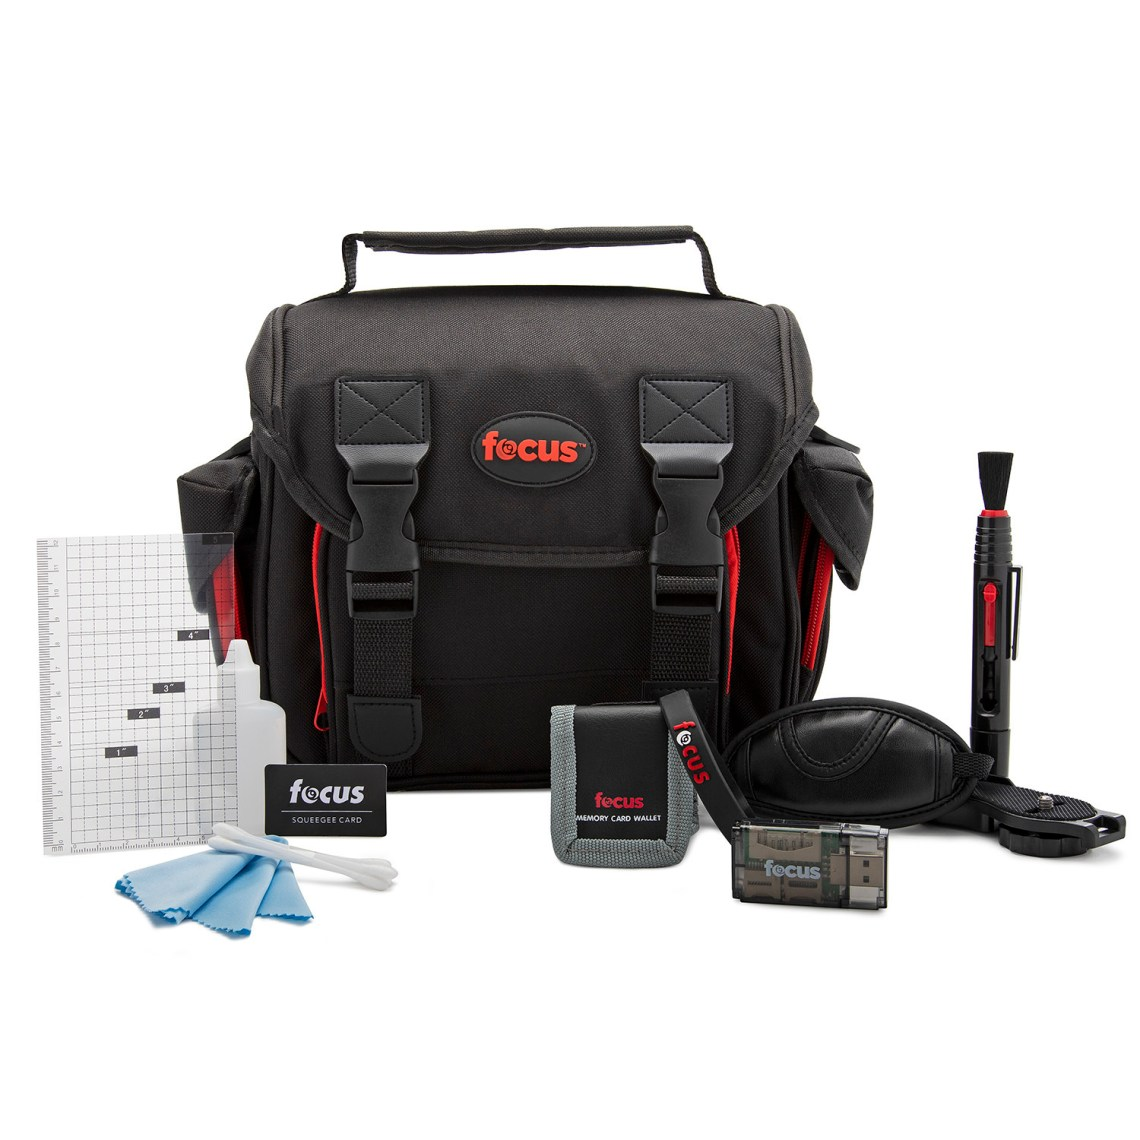 An accessory bundle that's great for any photographer. From the beginner to professional\, you'll find a host of high-quality\, essential camera accessories.Focus Deluxe SLR Soft Shell Camera Gadget Bag.Focus 5 Piece Digital Camera Accessory Kit (Optics Cleaning Solution\, Microfiber Cloth\,Memory Card Wallet\, LCD Screen Protectors\,Squeegee).Focus Lens Cleaning Pen.Focus All In One High Speed USB 2.0 Card Reader.Focus Professional Wrist Grip Strap for Digital & Film SLR Cameras.Focus Silicone Band for Zoom Lenses.